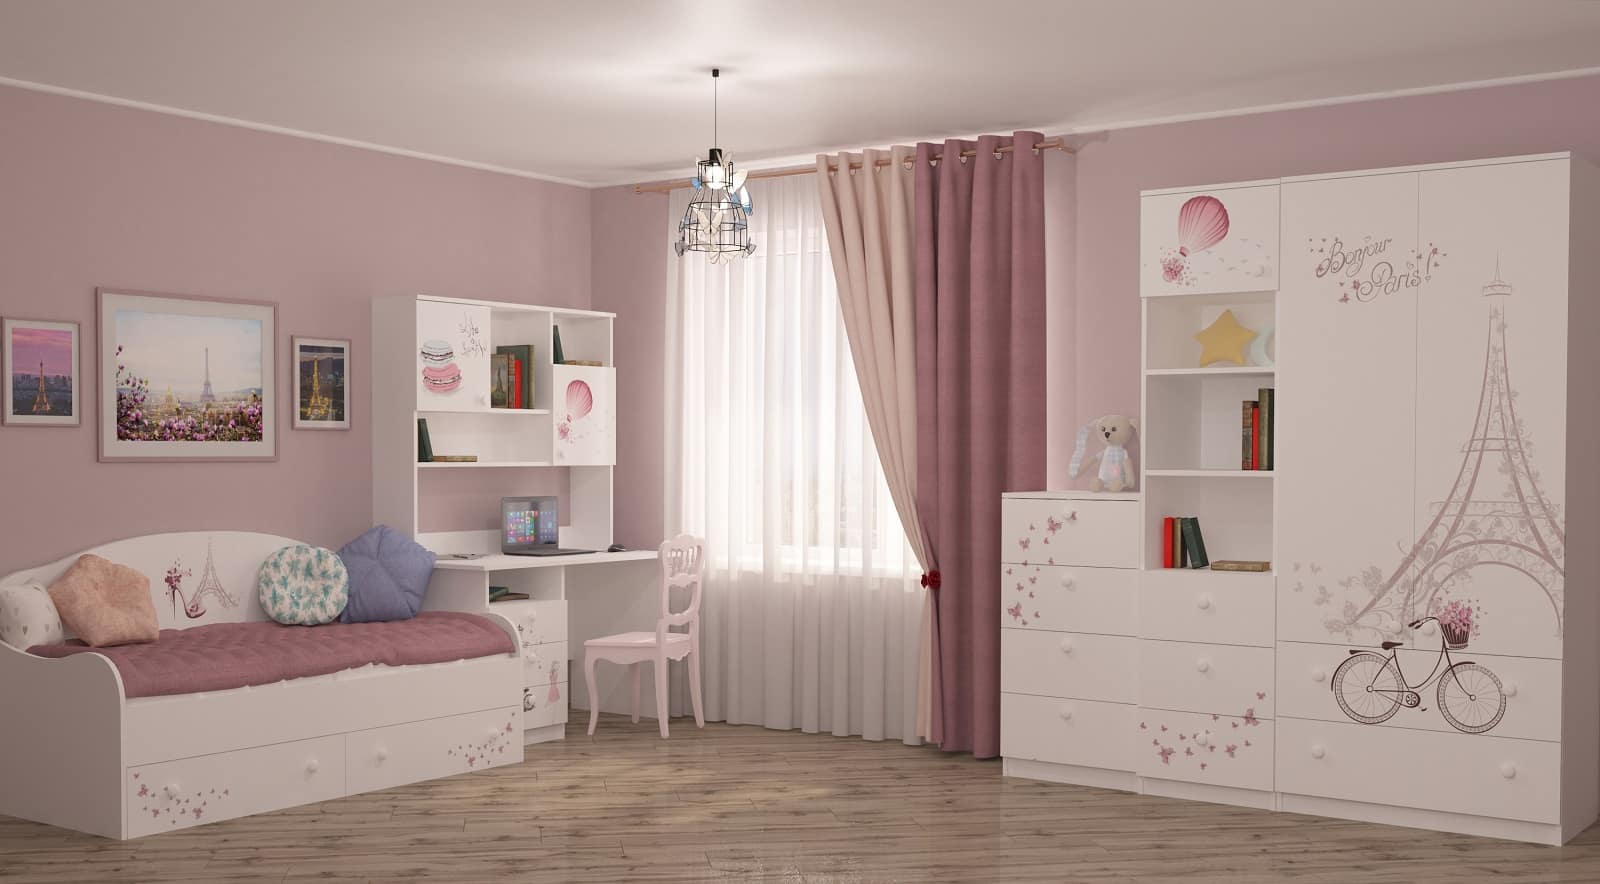 6 Tips For Designing Better Kids' Rooms. Simple decoration with pale pink walls, linoleum on the floor and white ceiling/furniture